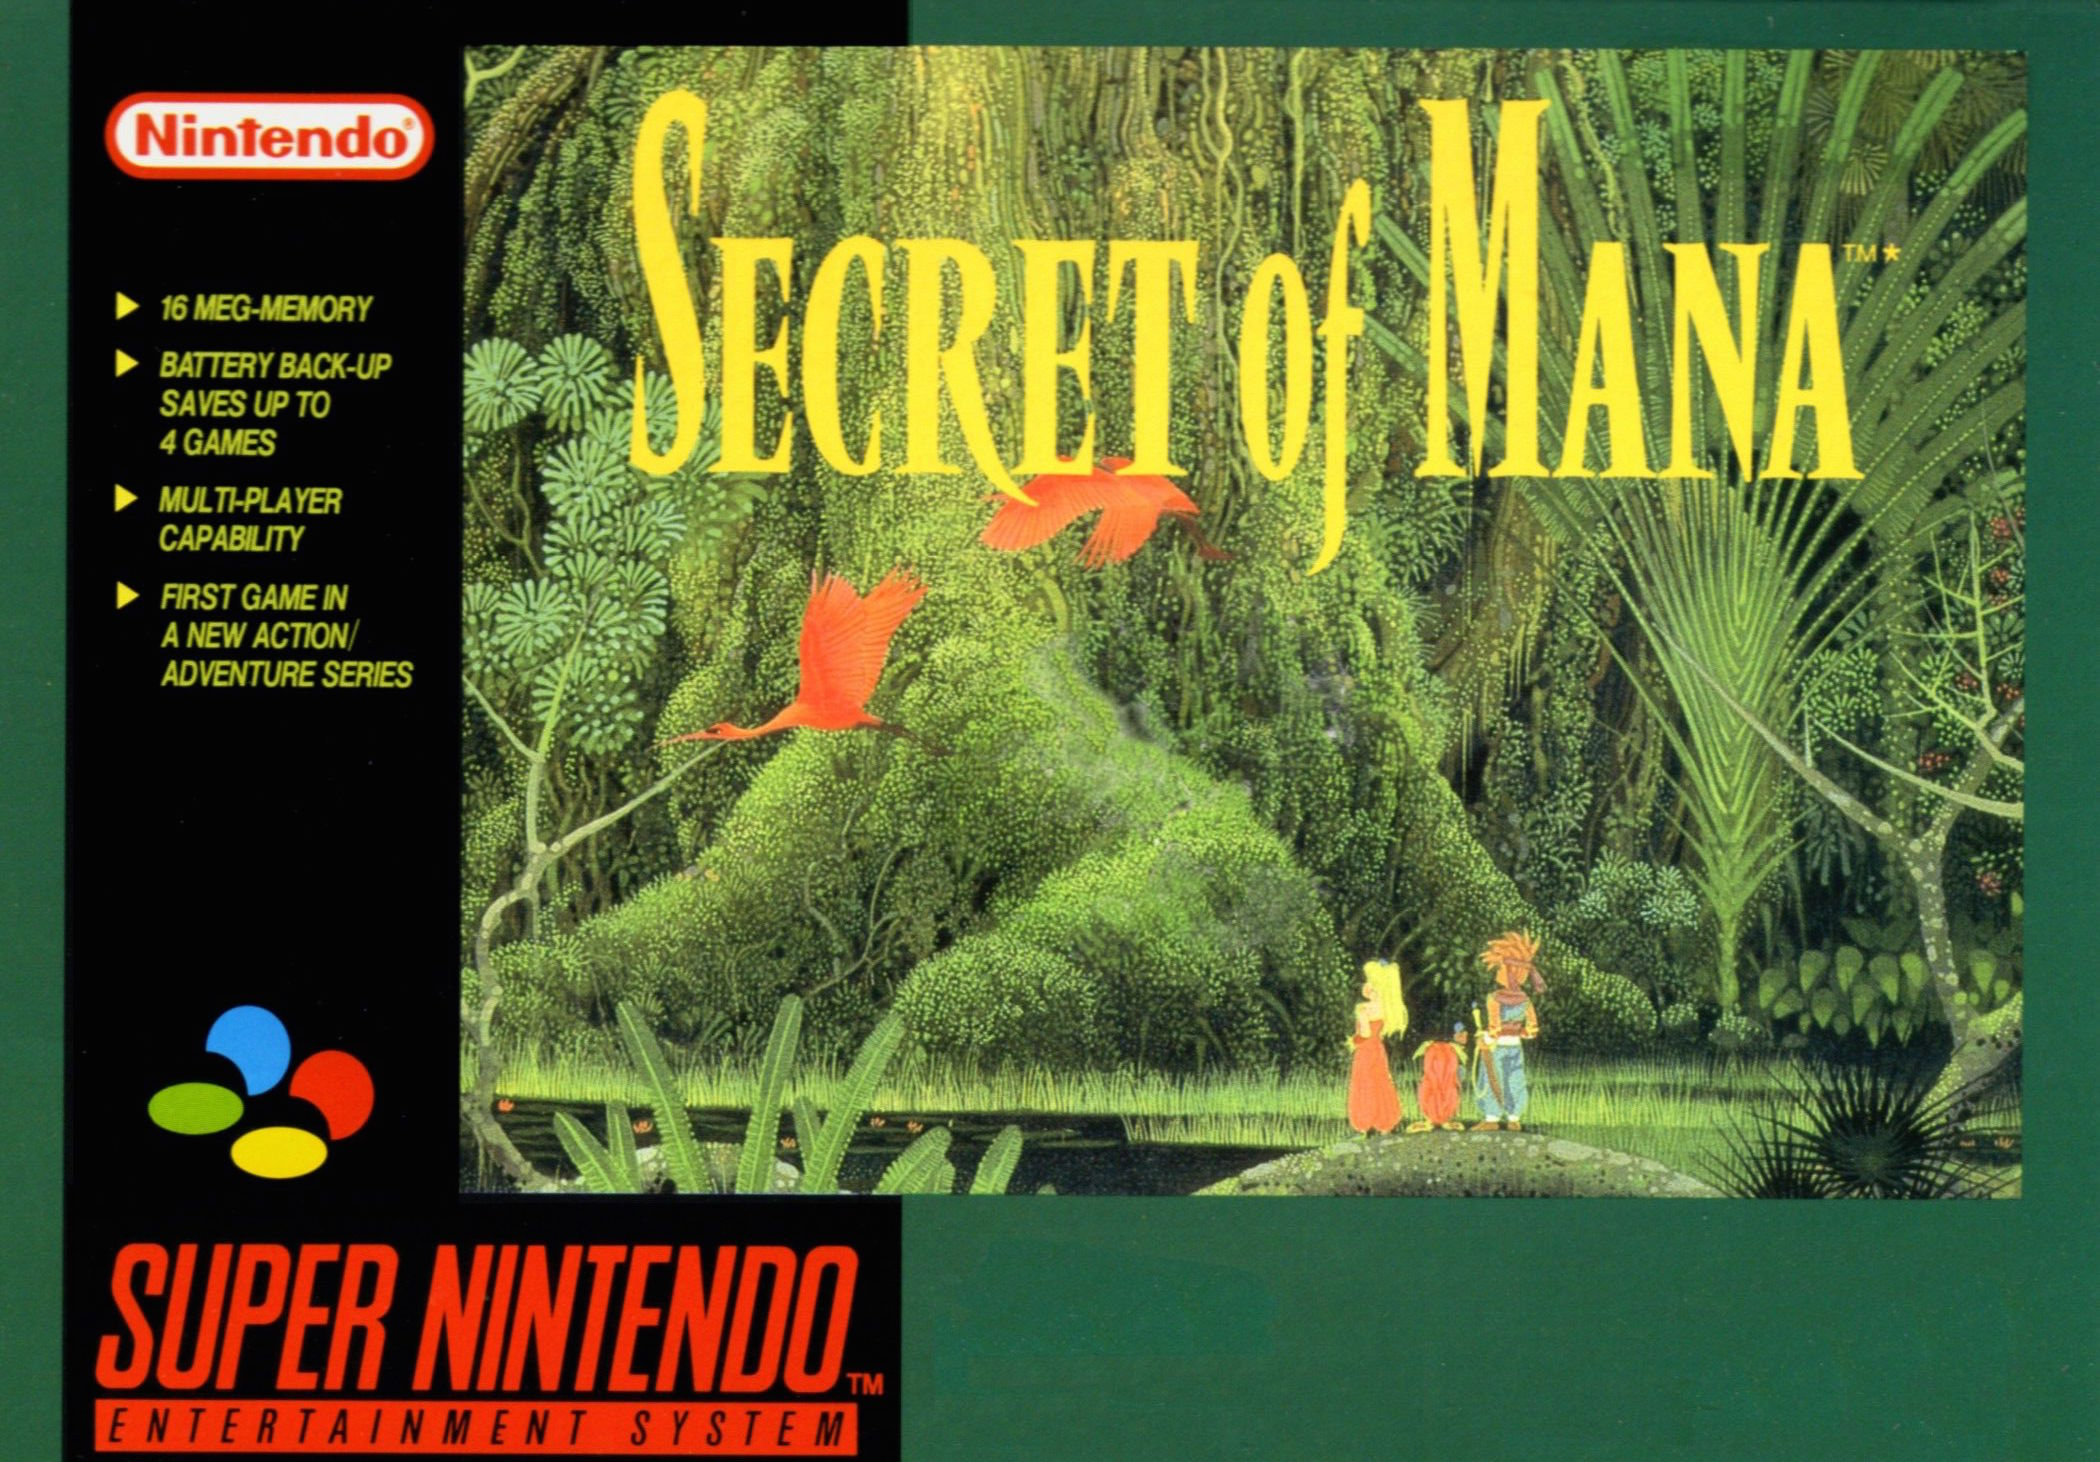 SNES classic Secret of Mana now available for Android ...